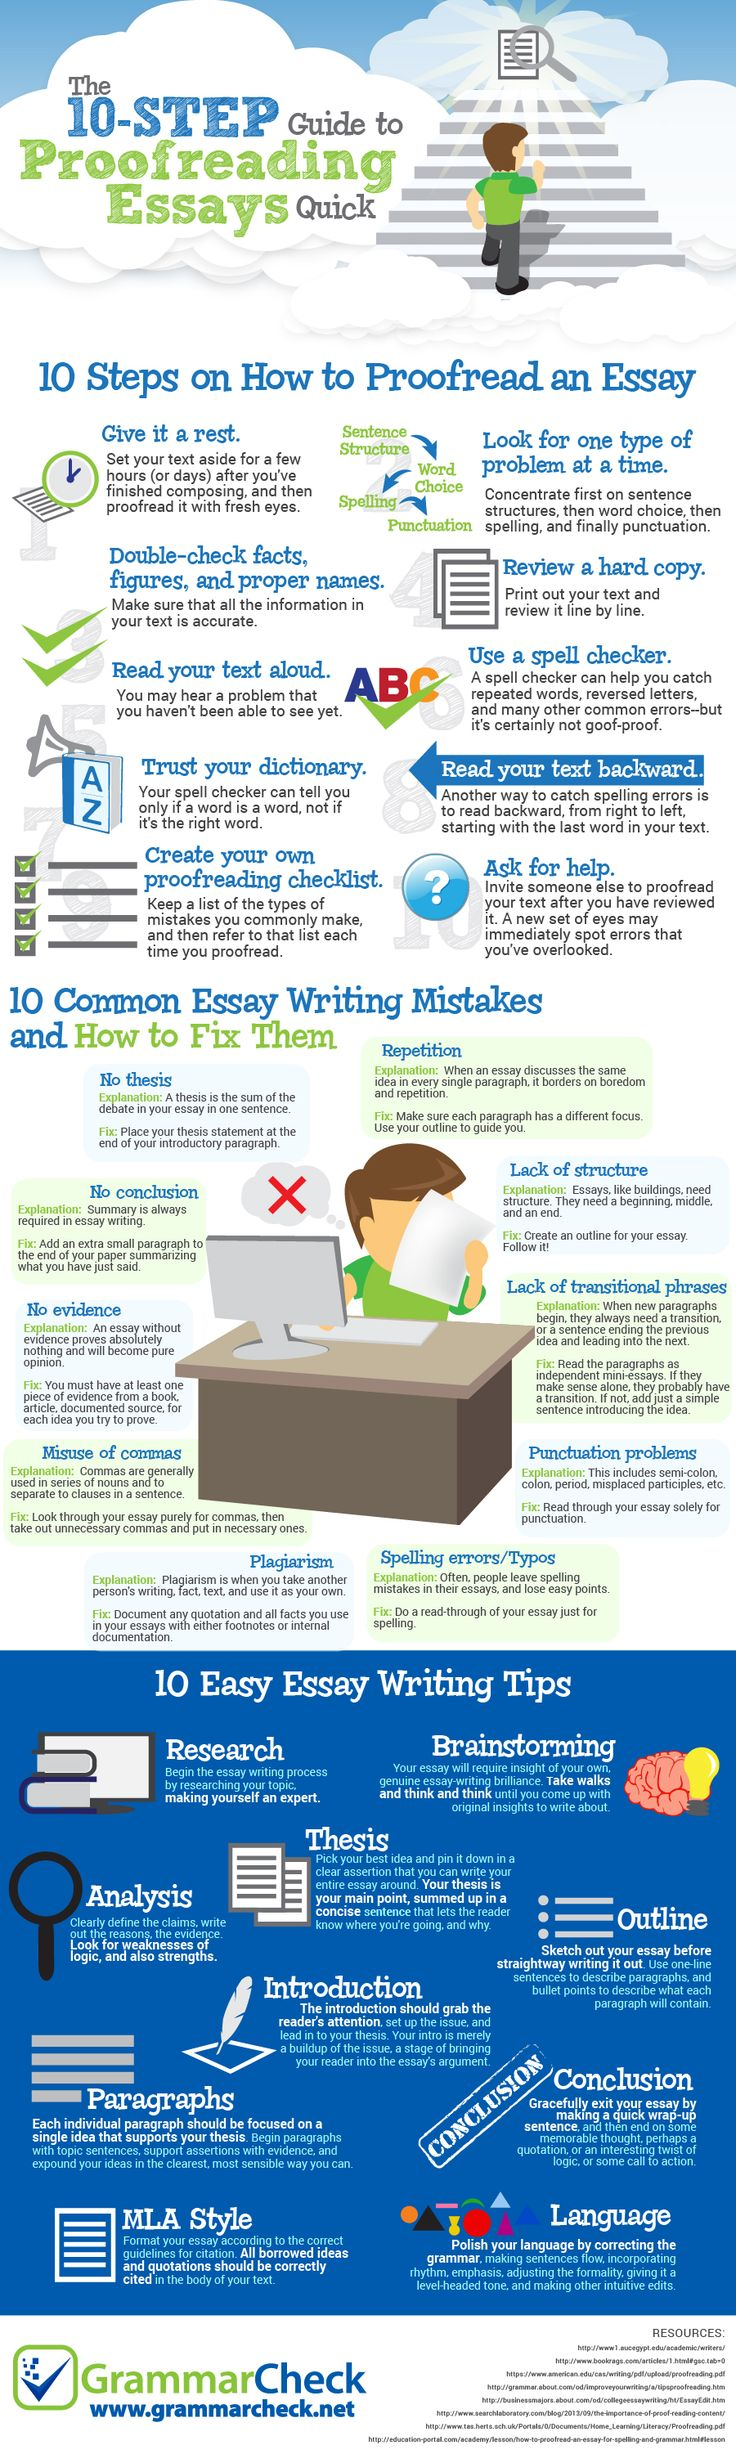 essay writing techniques produce good academic assignments Quality academic help from professional paper & essay writing service best   we give clients strong guarantees: all papers are unique and plagiarism-free   recently i've used this site after trying several similar services and to my surprise  they did a great job on my homework  expert tips on how to write a term  paper.